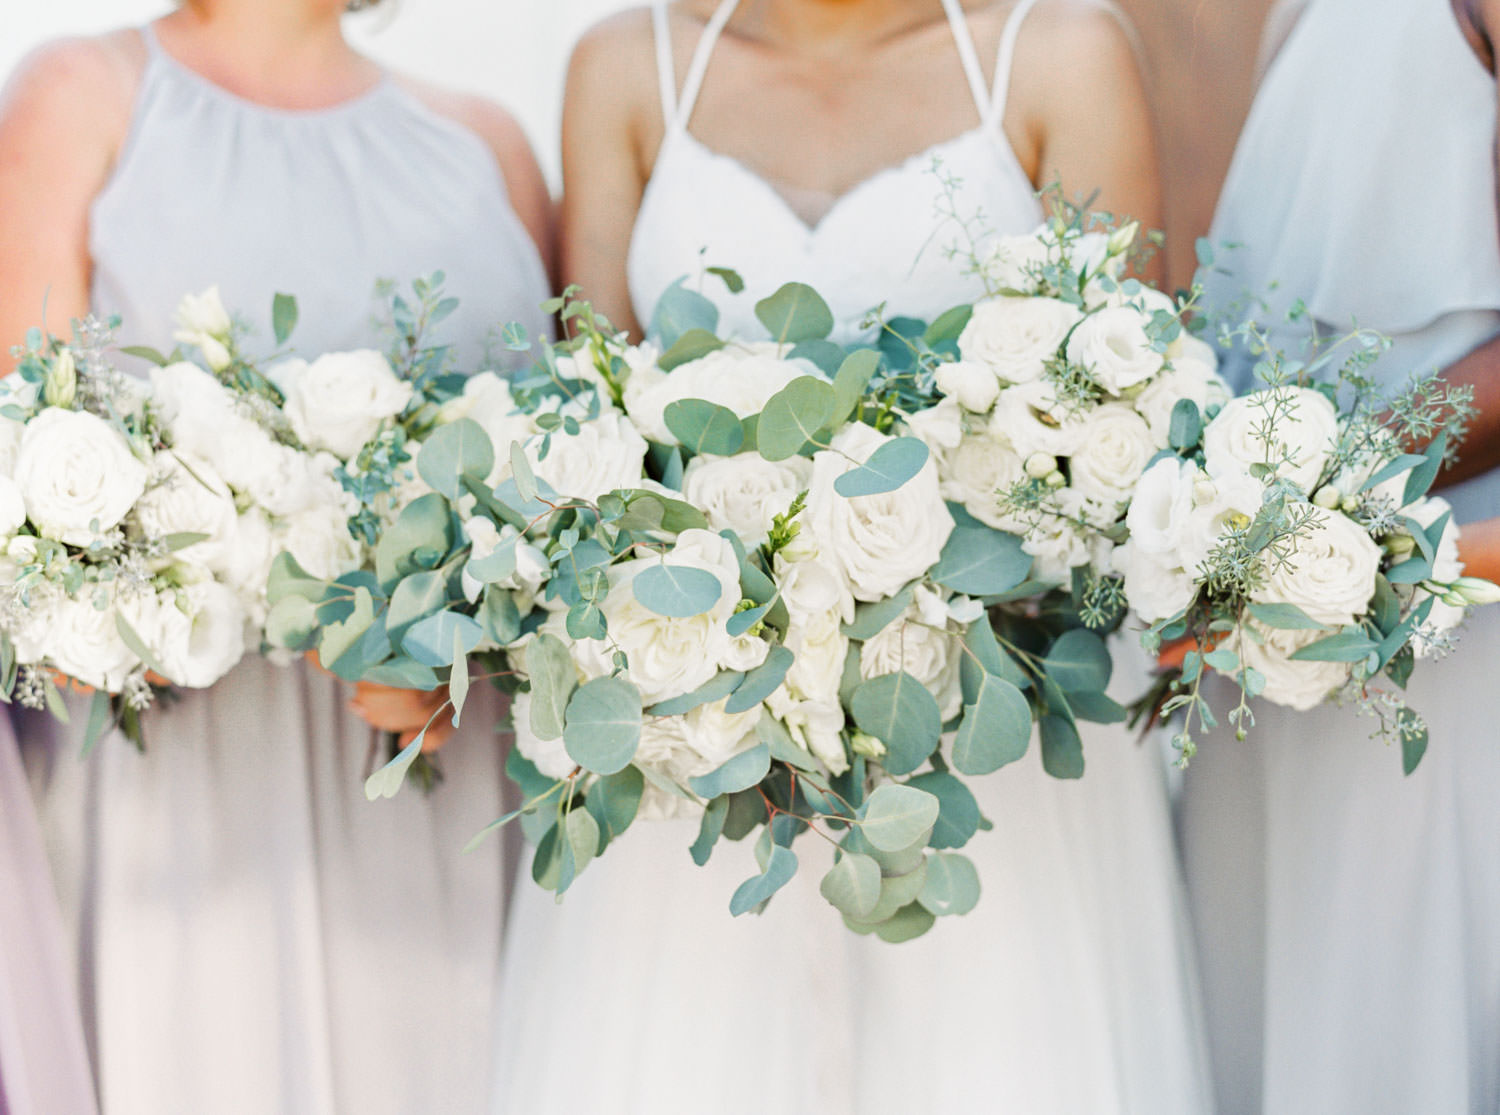 Bridal party bouquet film portrait of bridesmaids in grey and lavender dresses with white and green flowers at Temecula Wedding at Villa De Amore, Cavin Elizabeth Photography